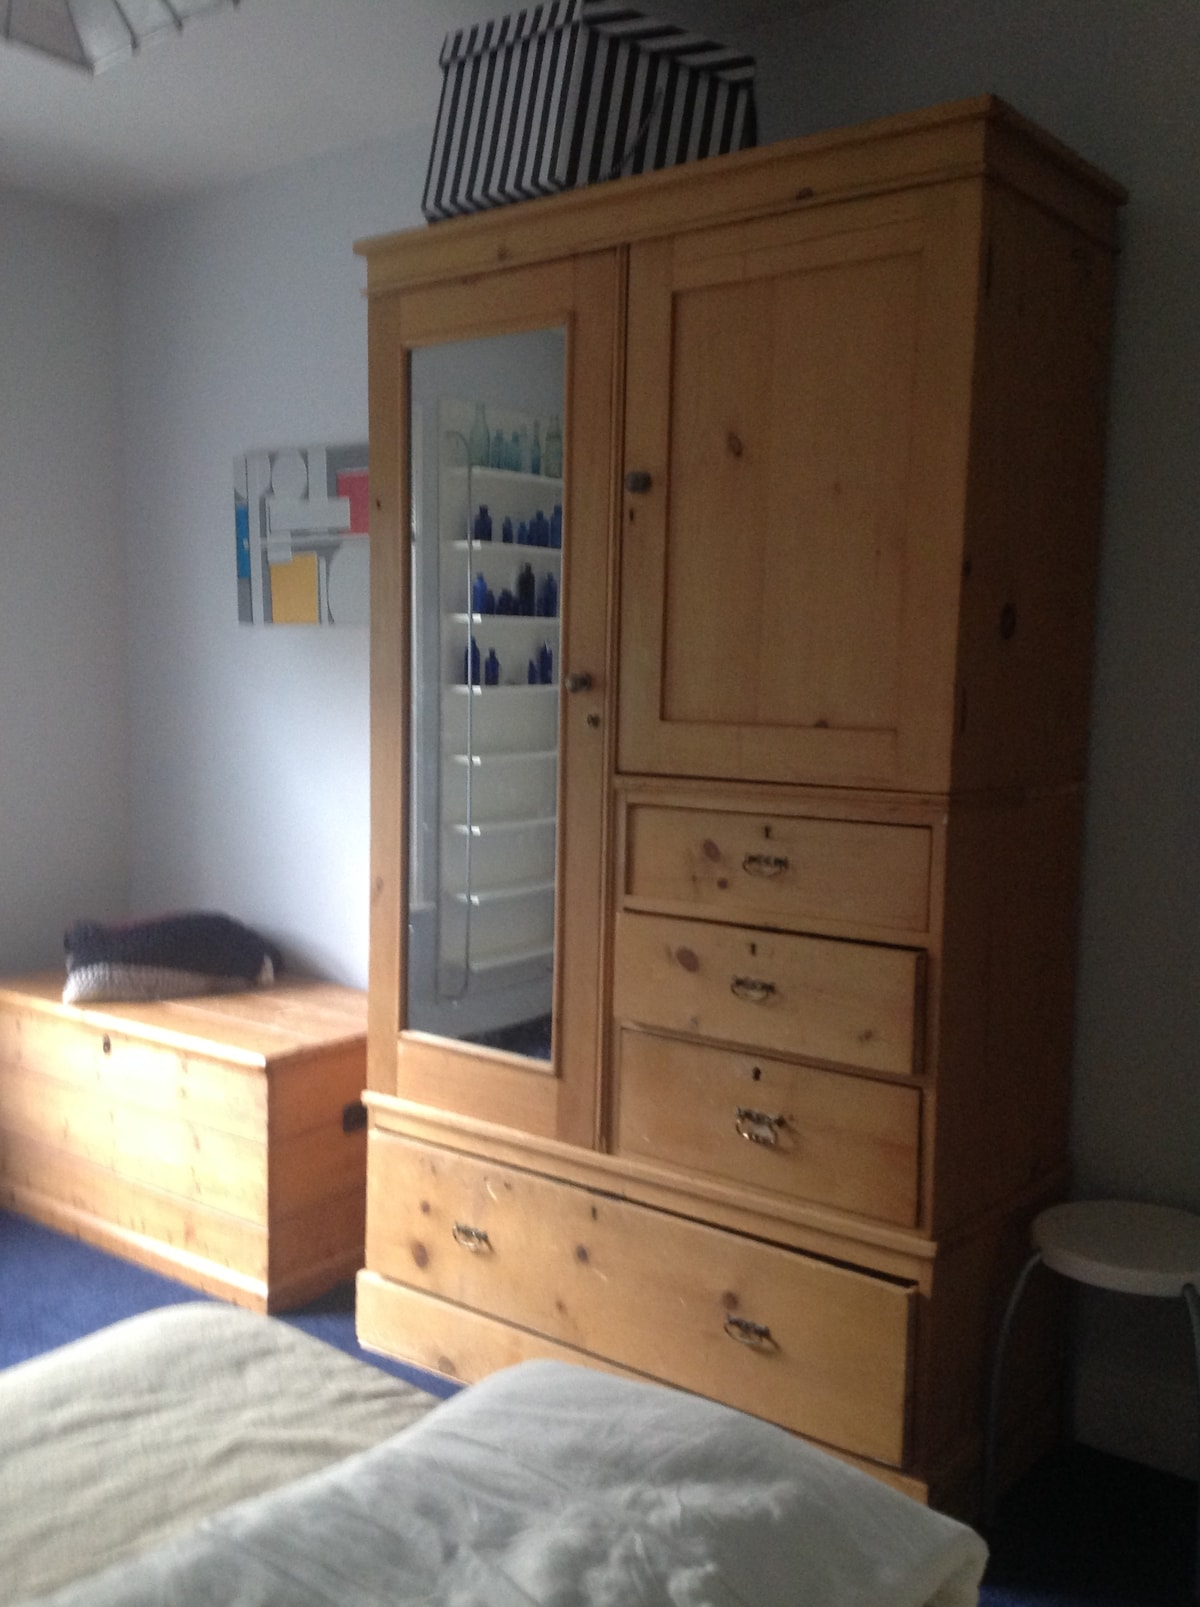 Plenty of storage space. Lockable wardrobe, cupboard and drawers.